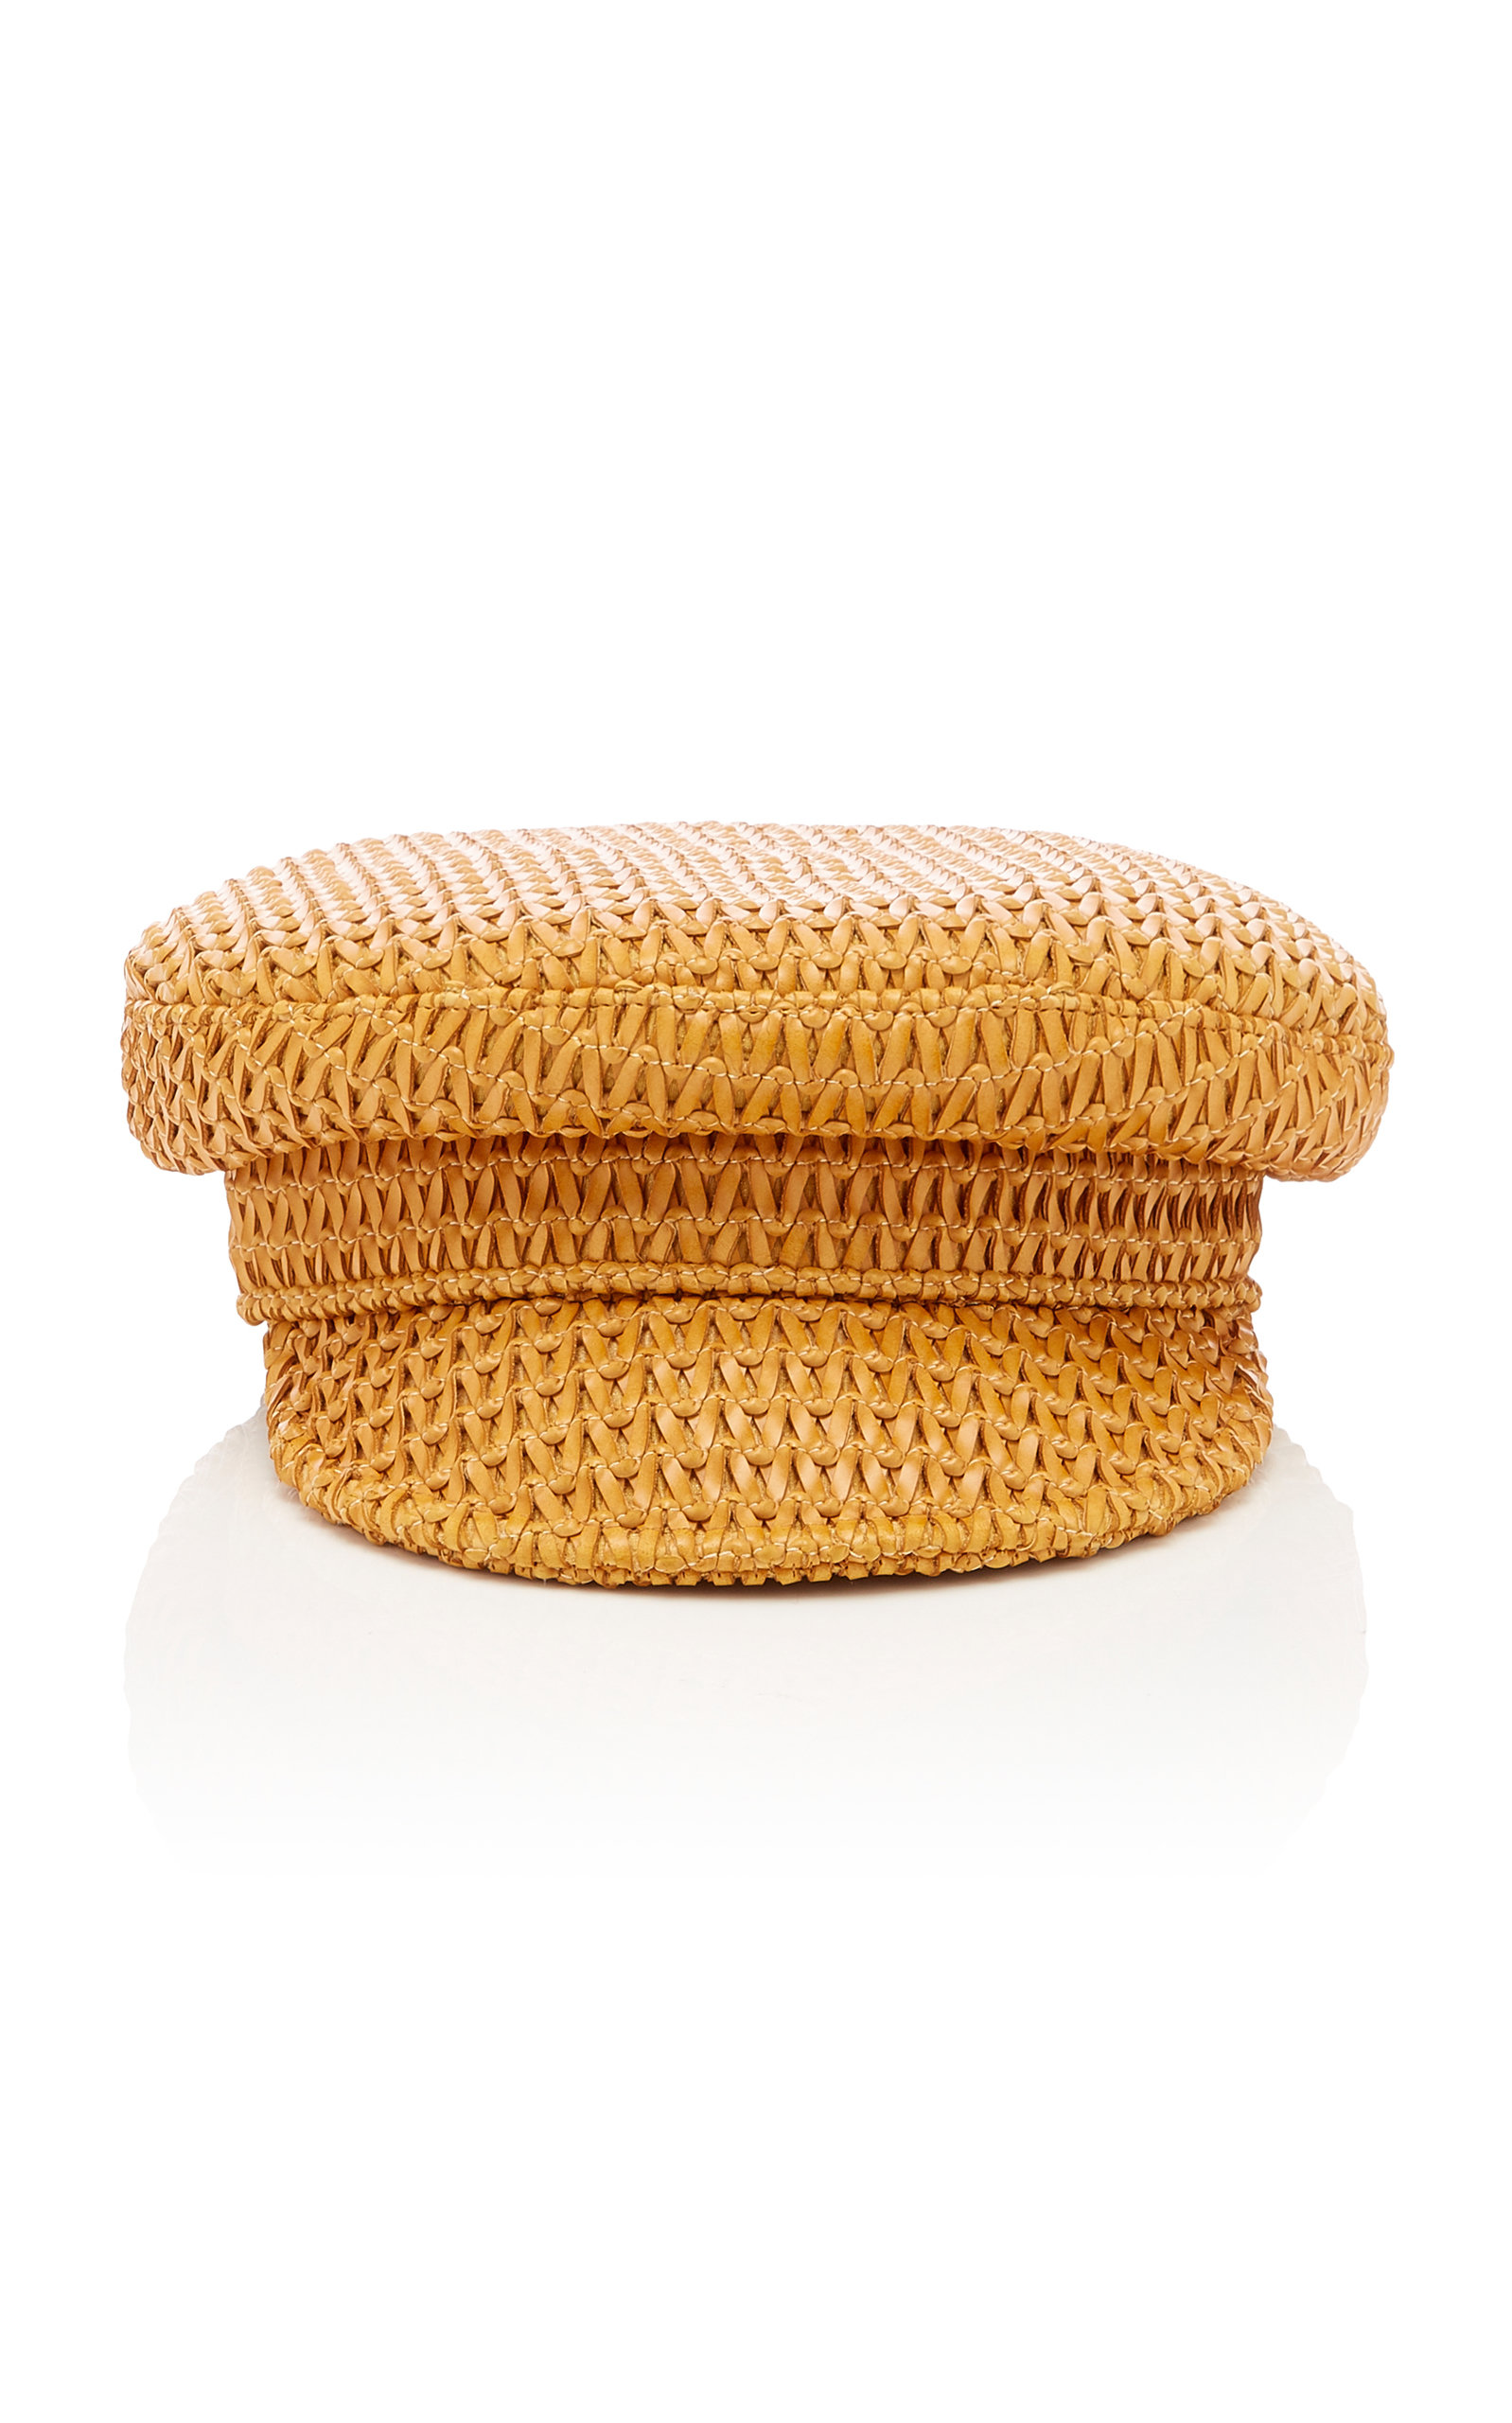 large_lack-of-color-brown-mesa-woven-leather-cap.jpg